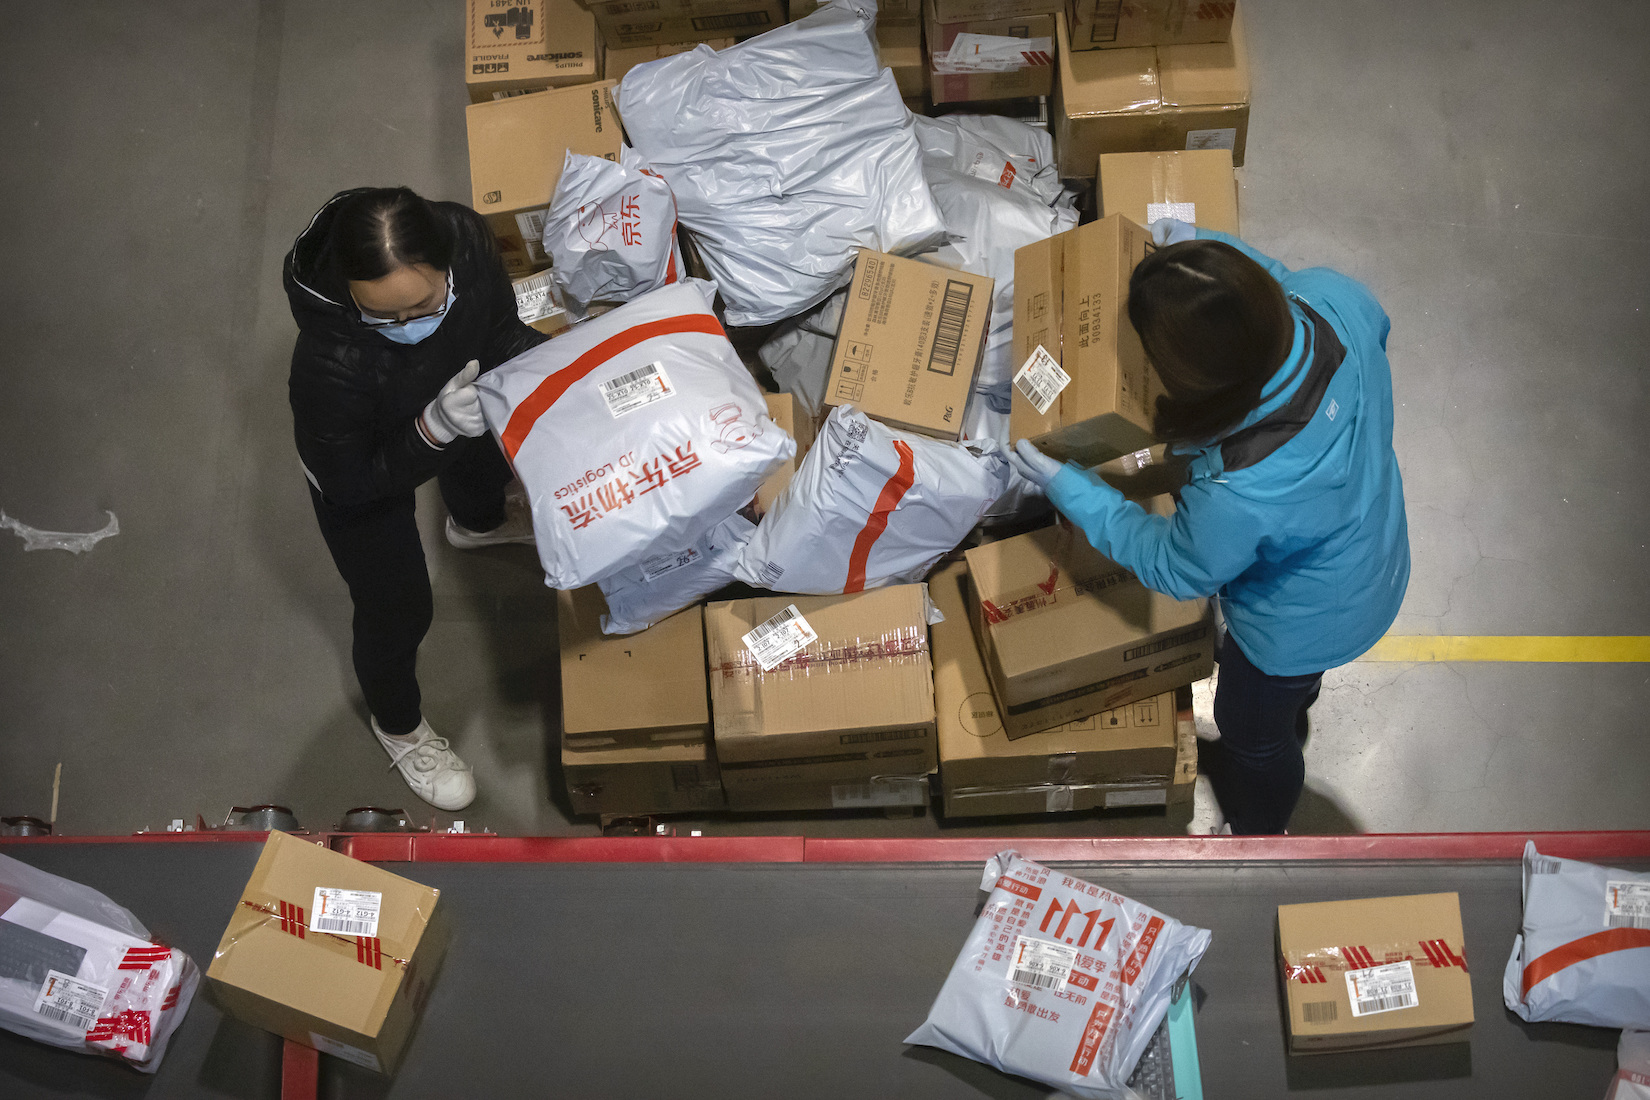 Workers load parcels onto a conveyor belt at a JD.com warehouse in Beijing, Wednesday, Nov. 11, 2020.